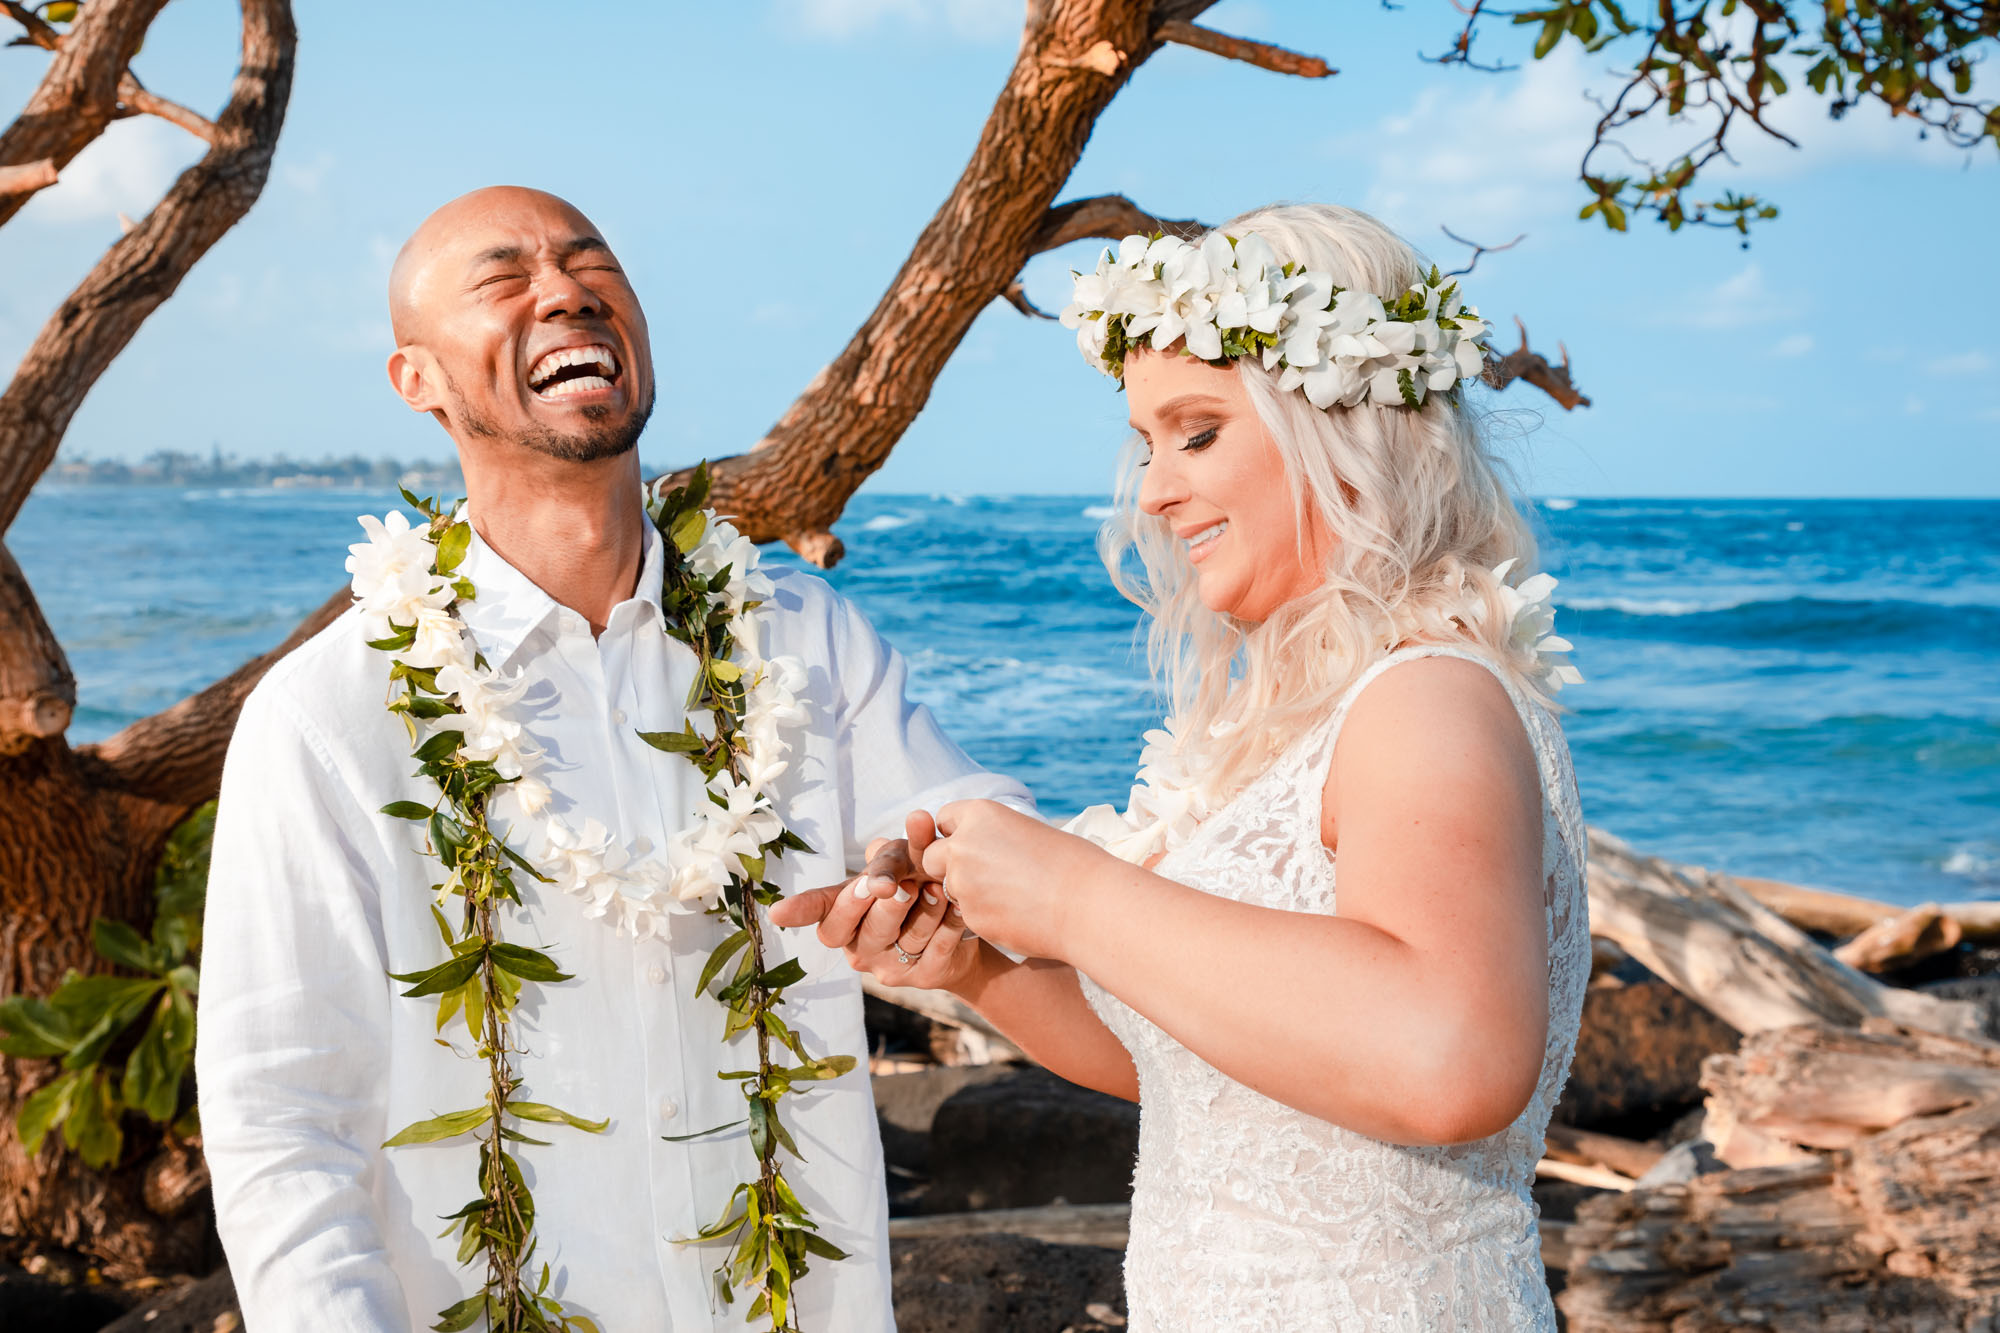 kauai elopement ceremony bride groom exchange rings vows